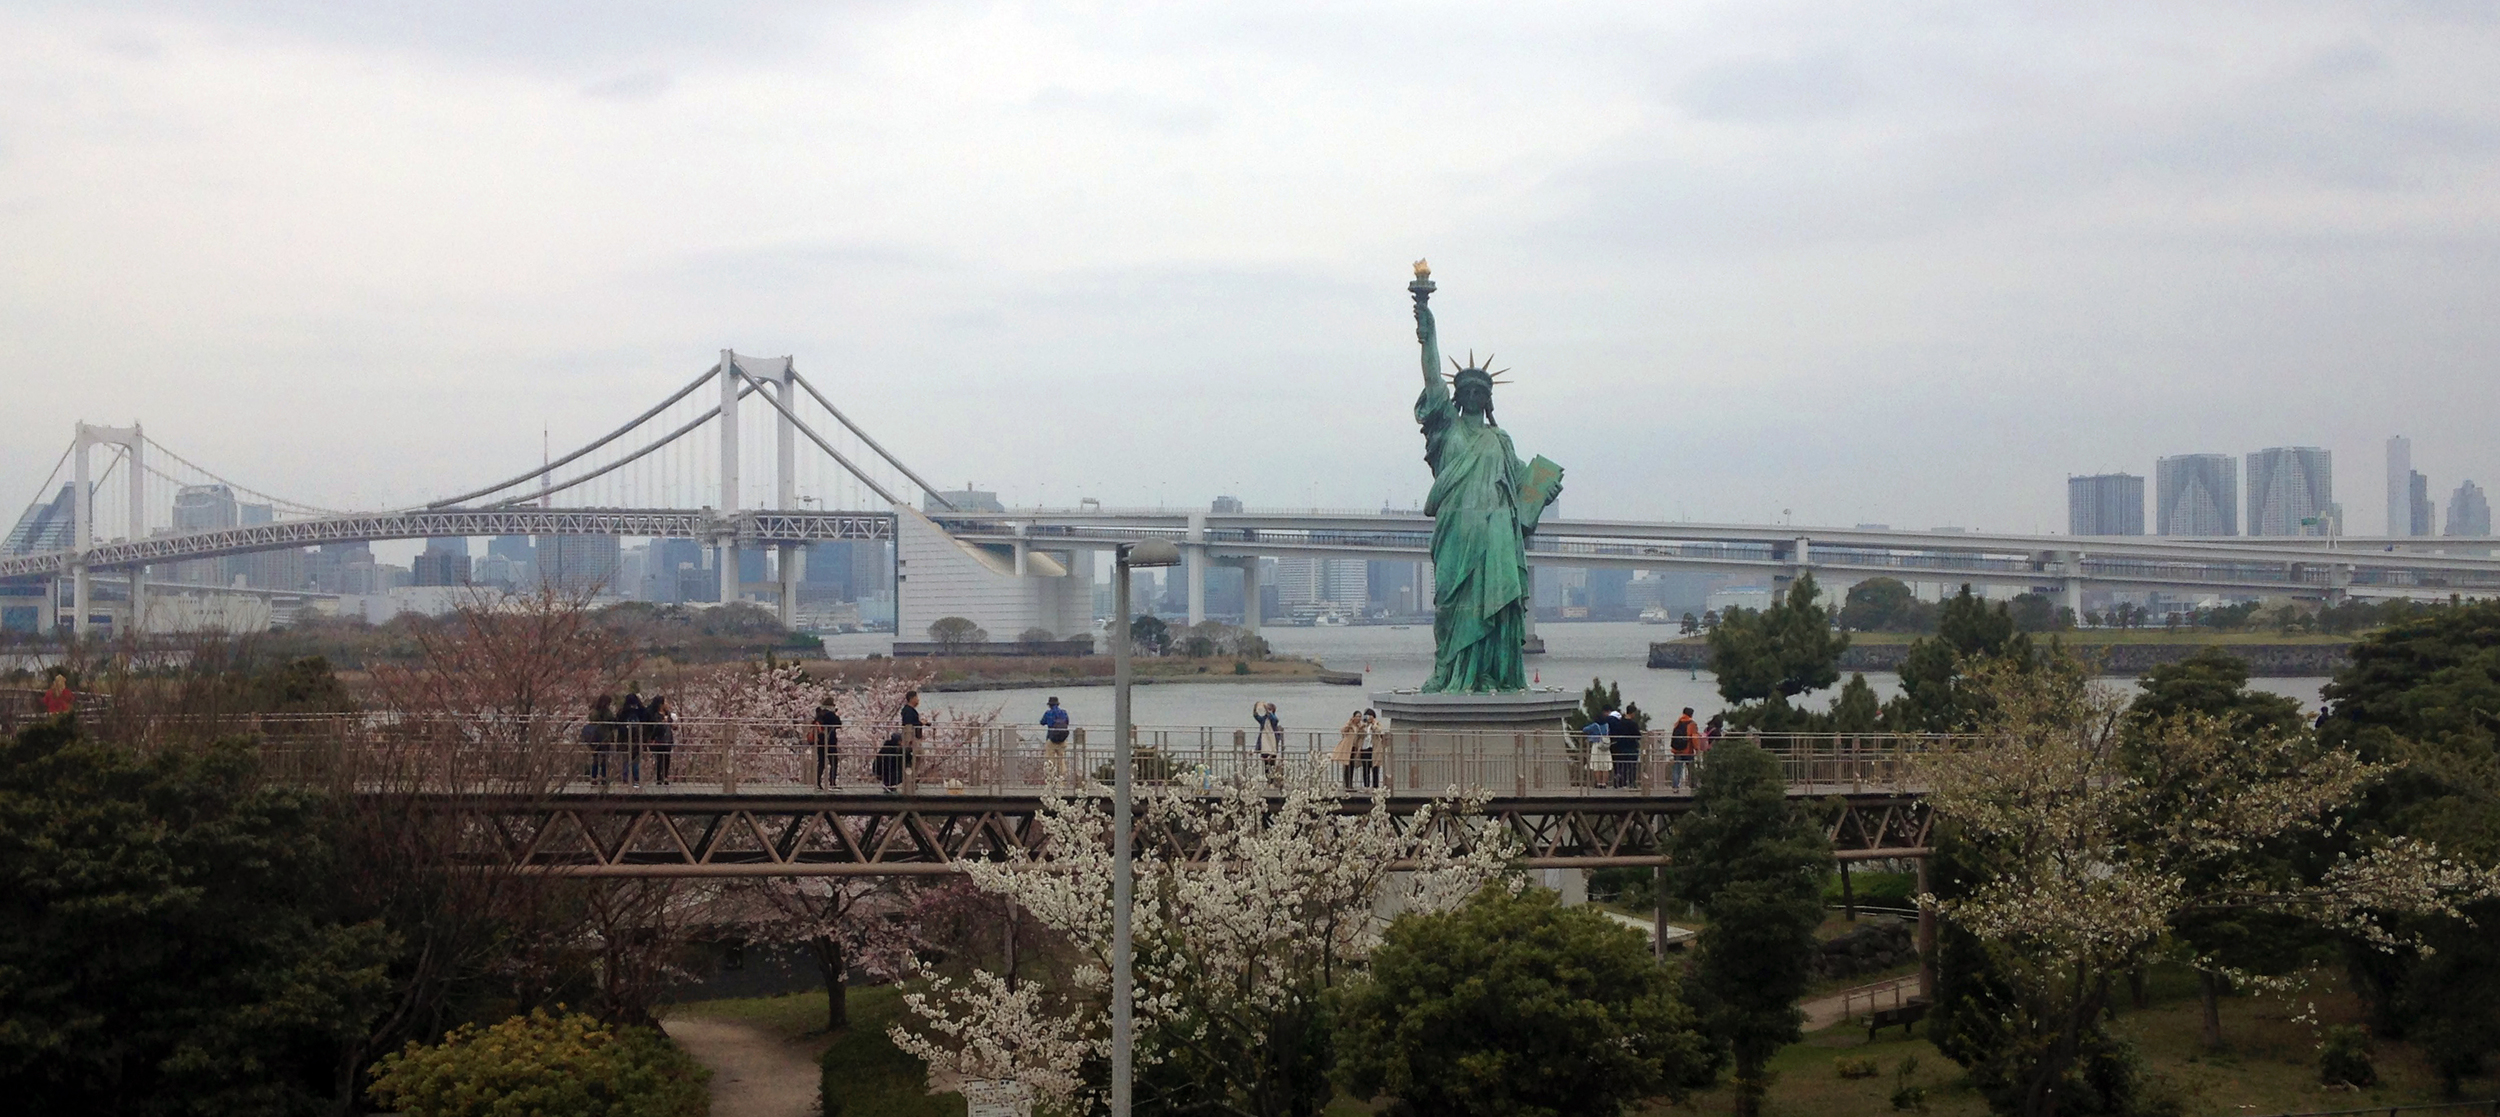 The closest I've ever come to seeing the Statue of Liberty was in Japan.